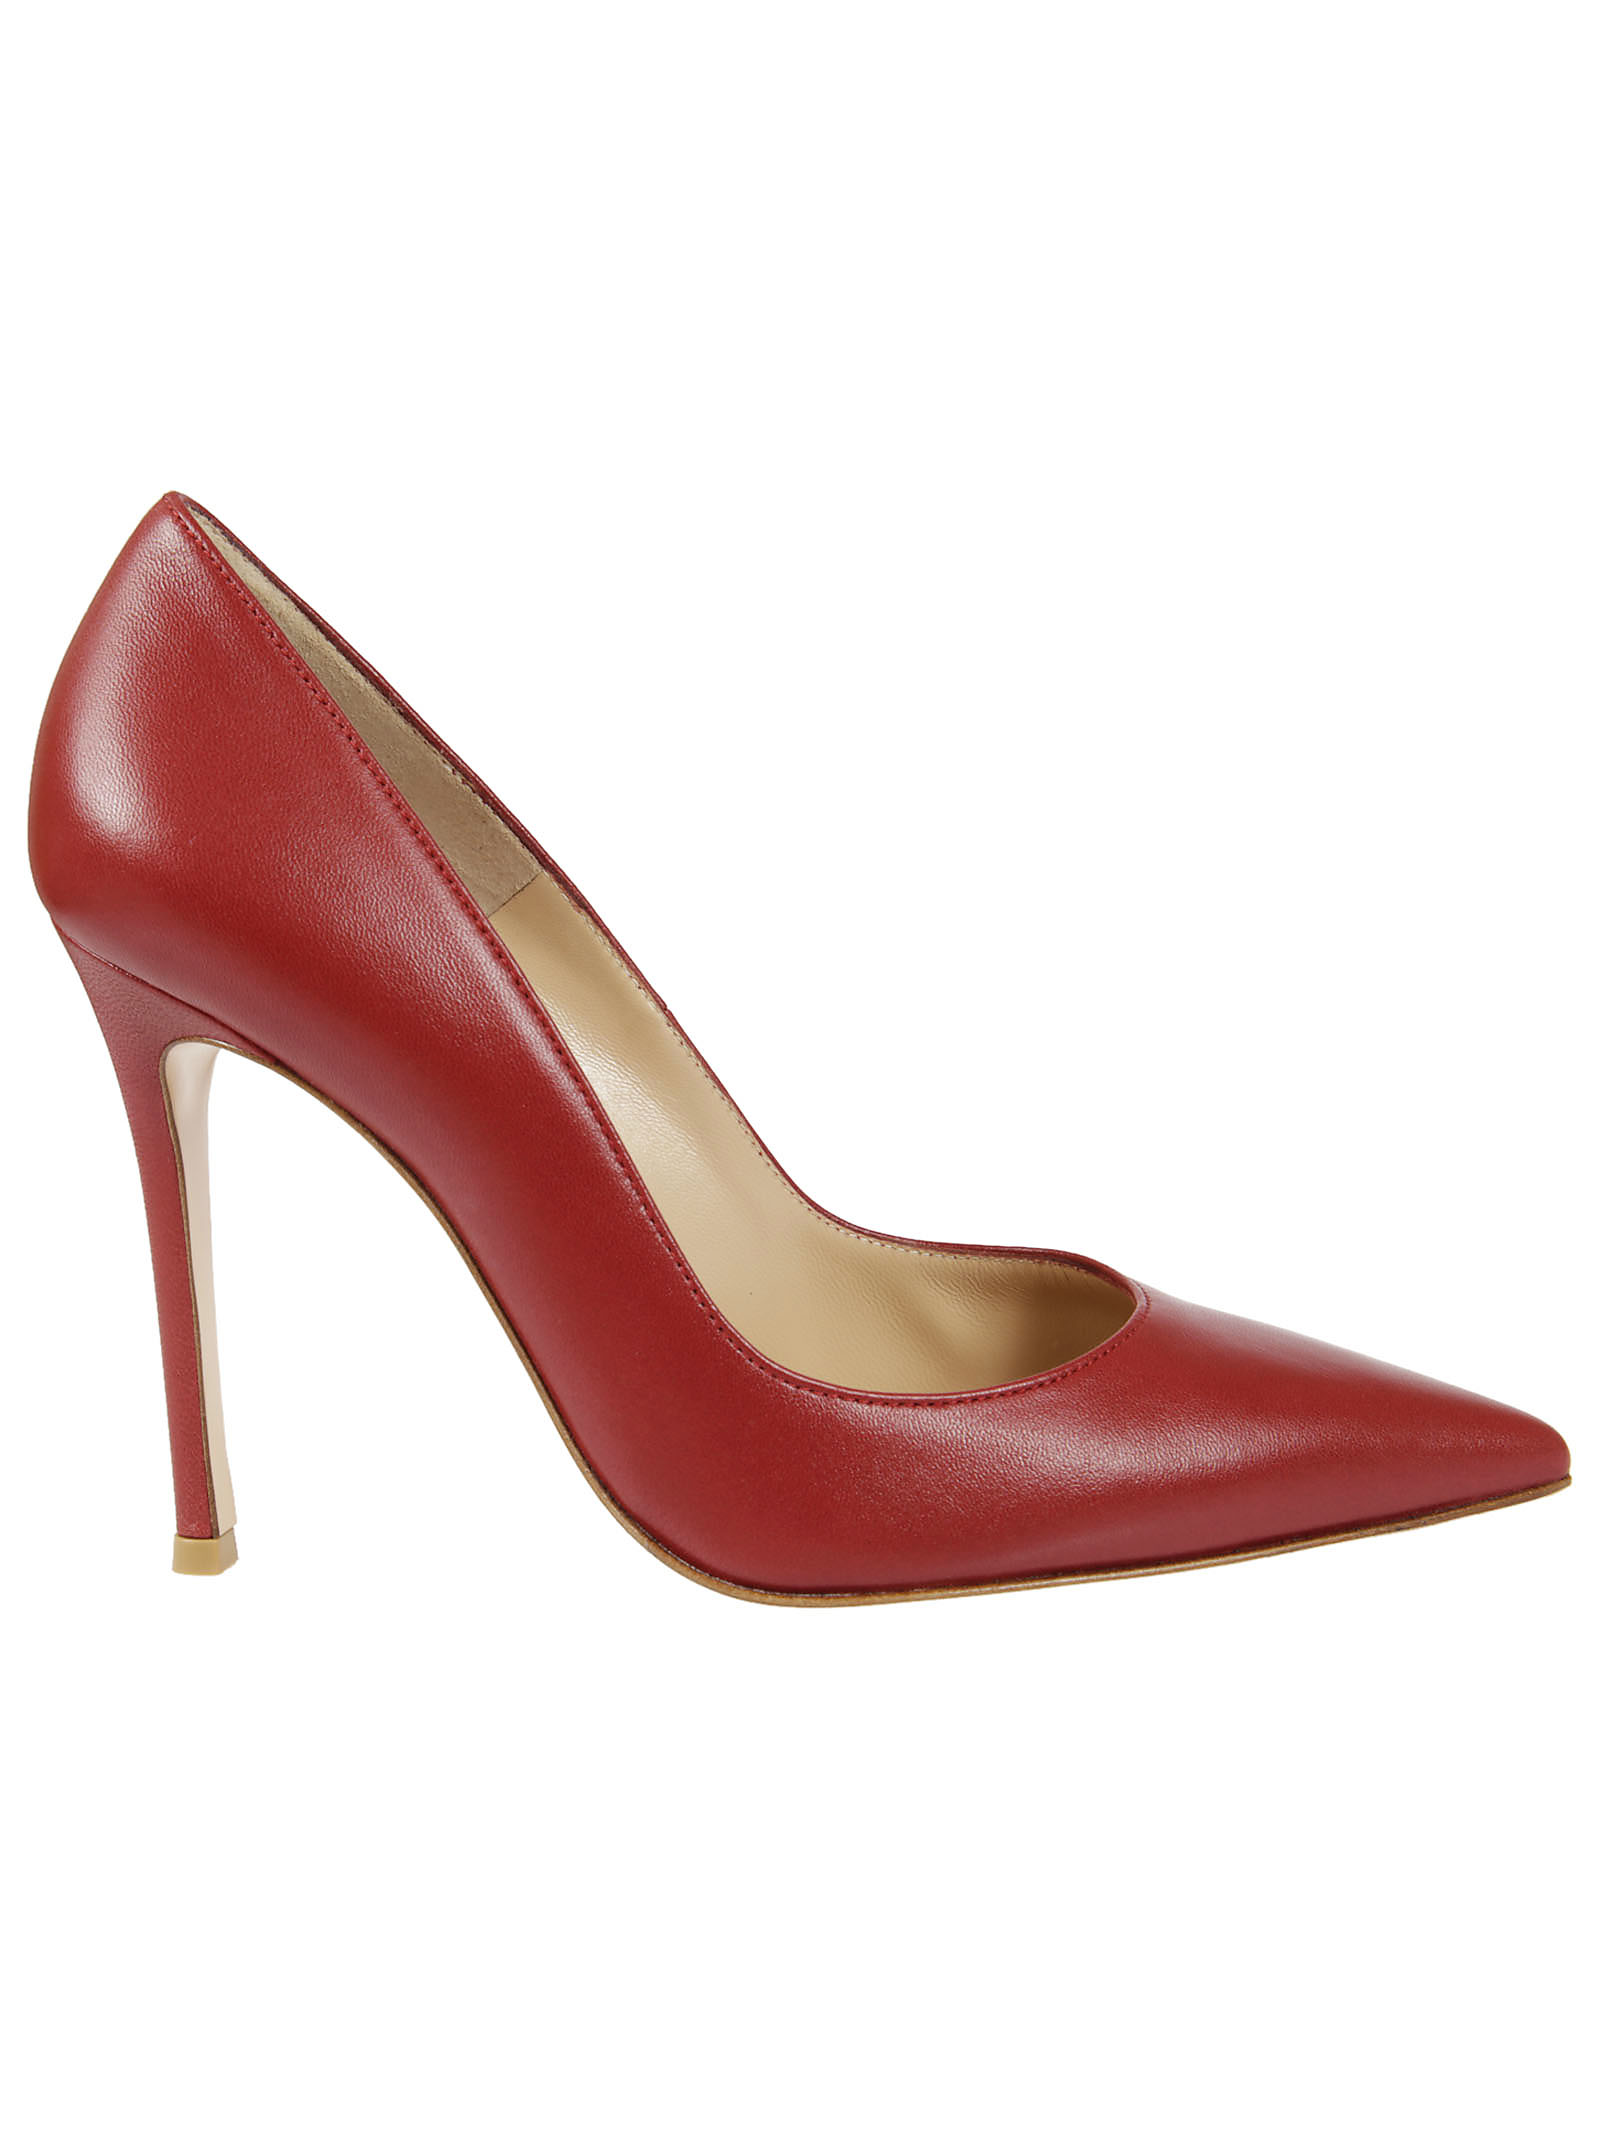 Gianvito Rossi Gianvito Rossi Leather Pumps